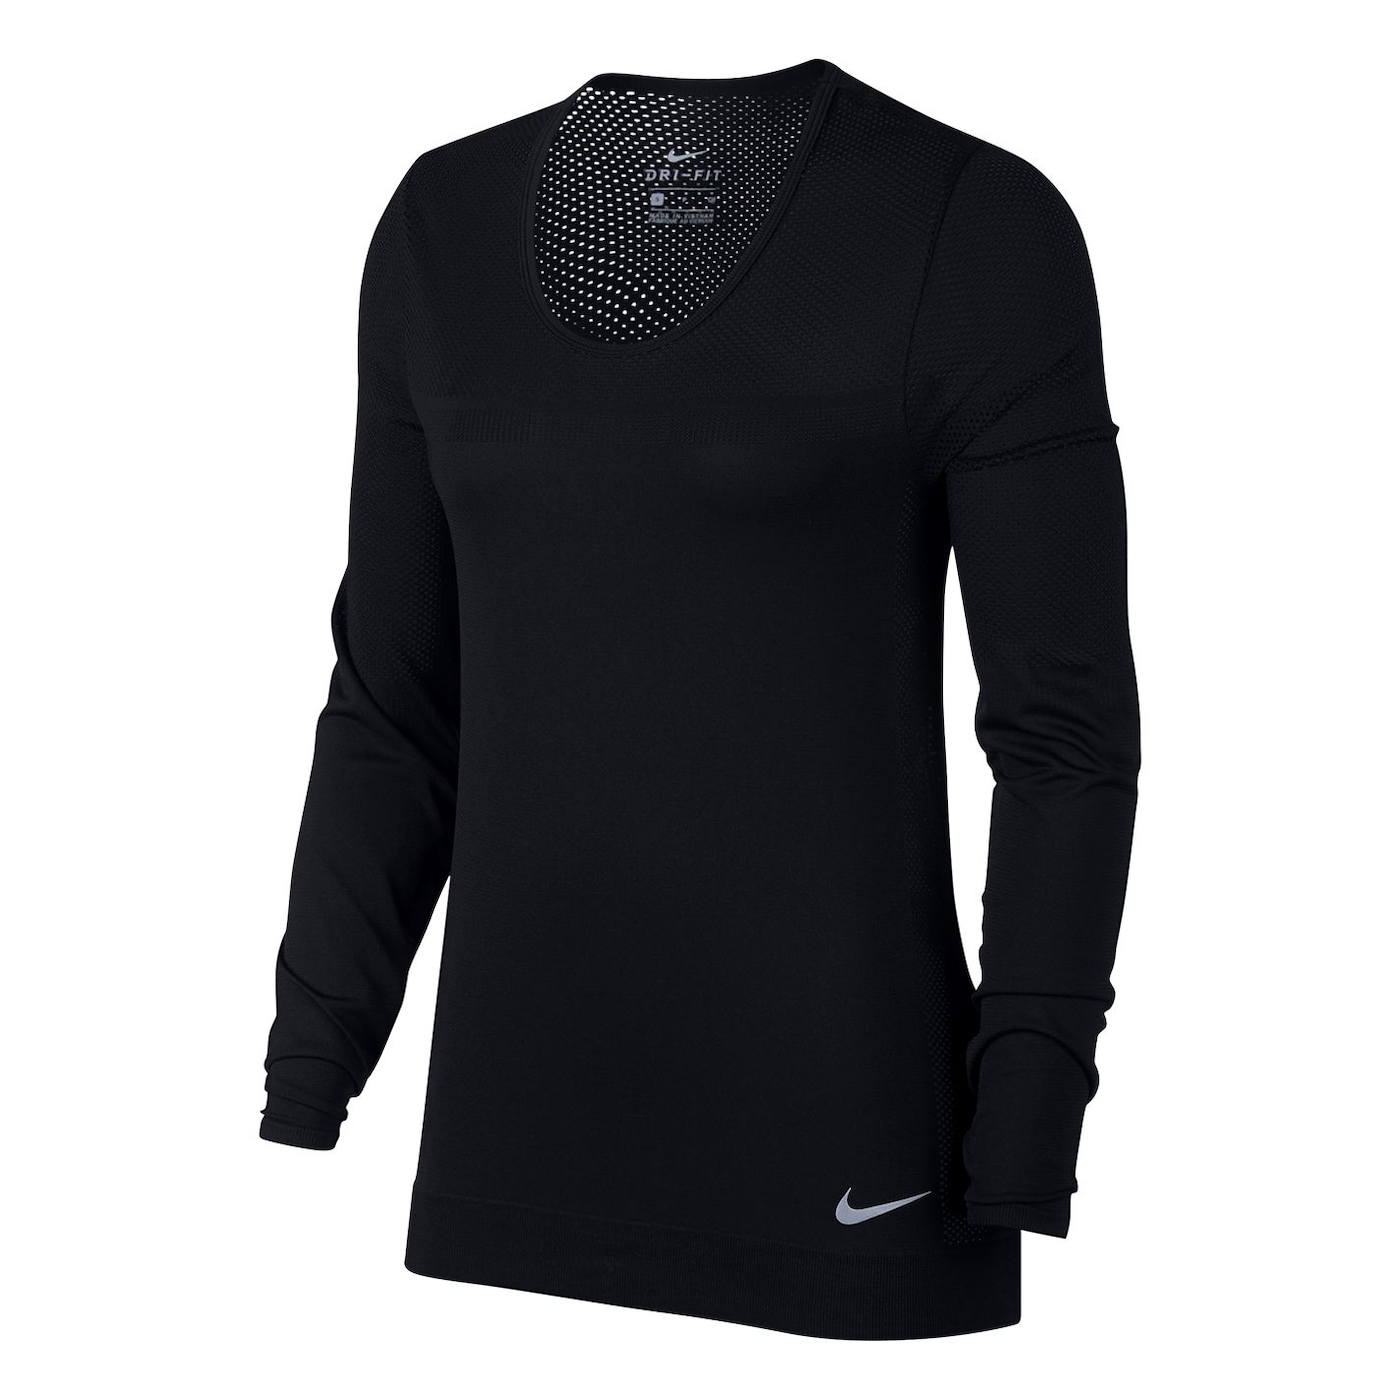 Triko Nike Infinite Long Sleeve Top dámské